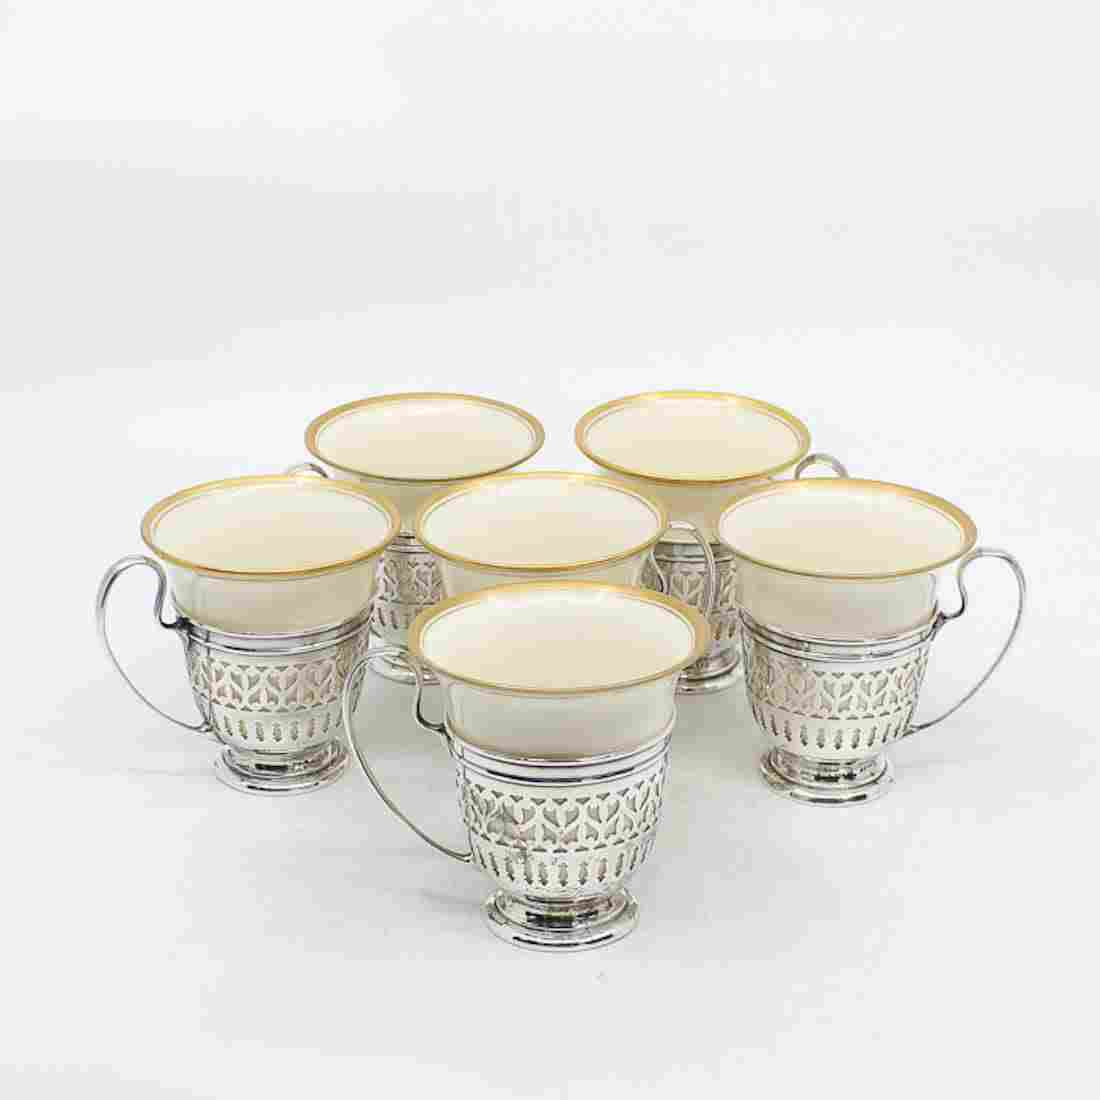 Set of Six Lenox Pierced Sterling Silver Demitasse Cups